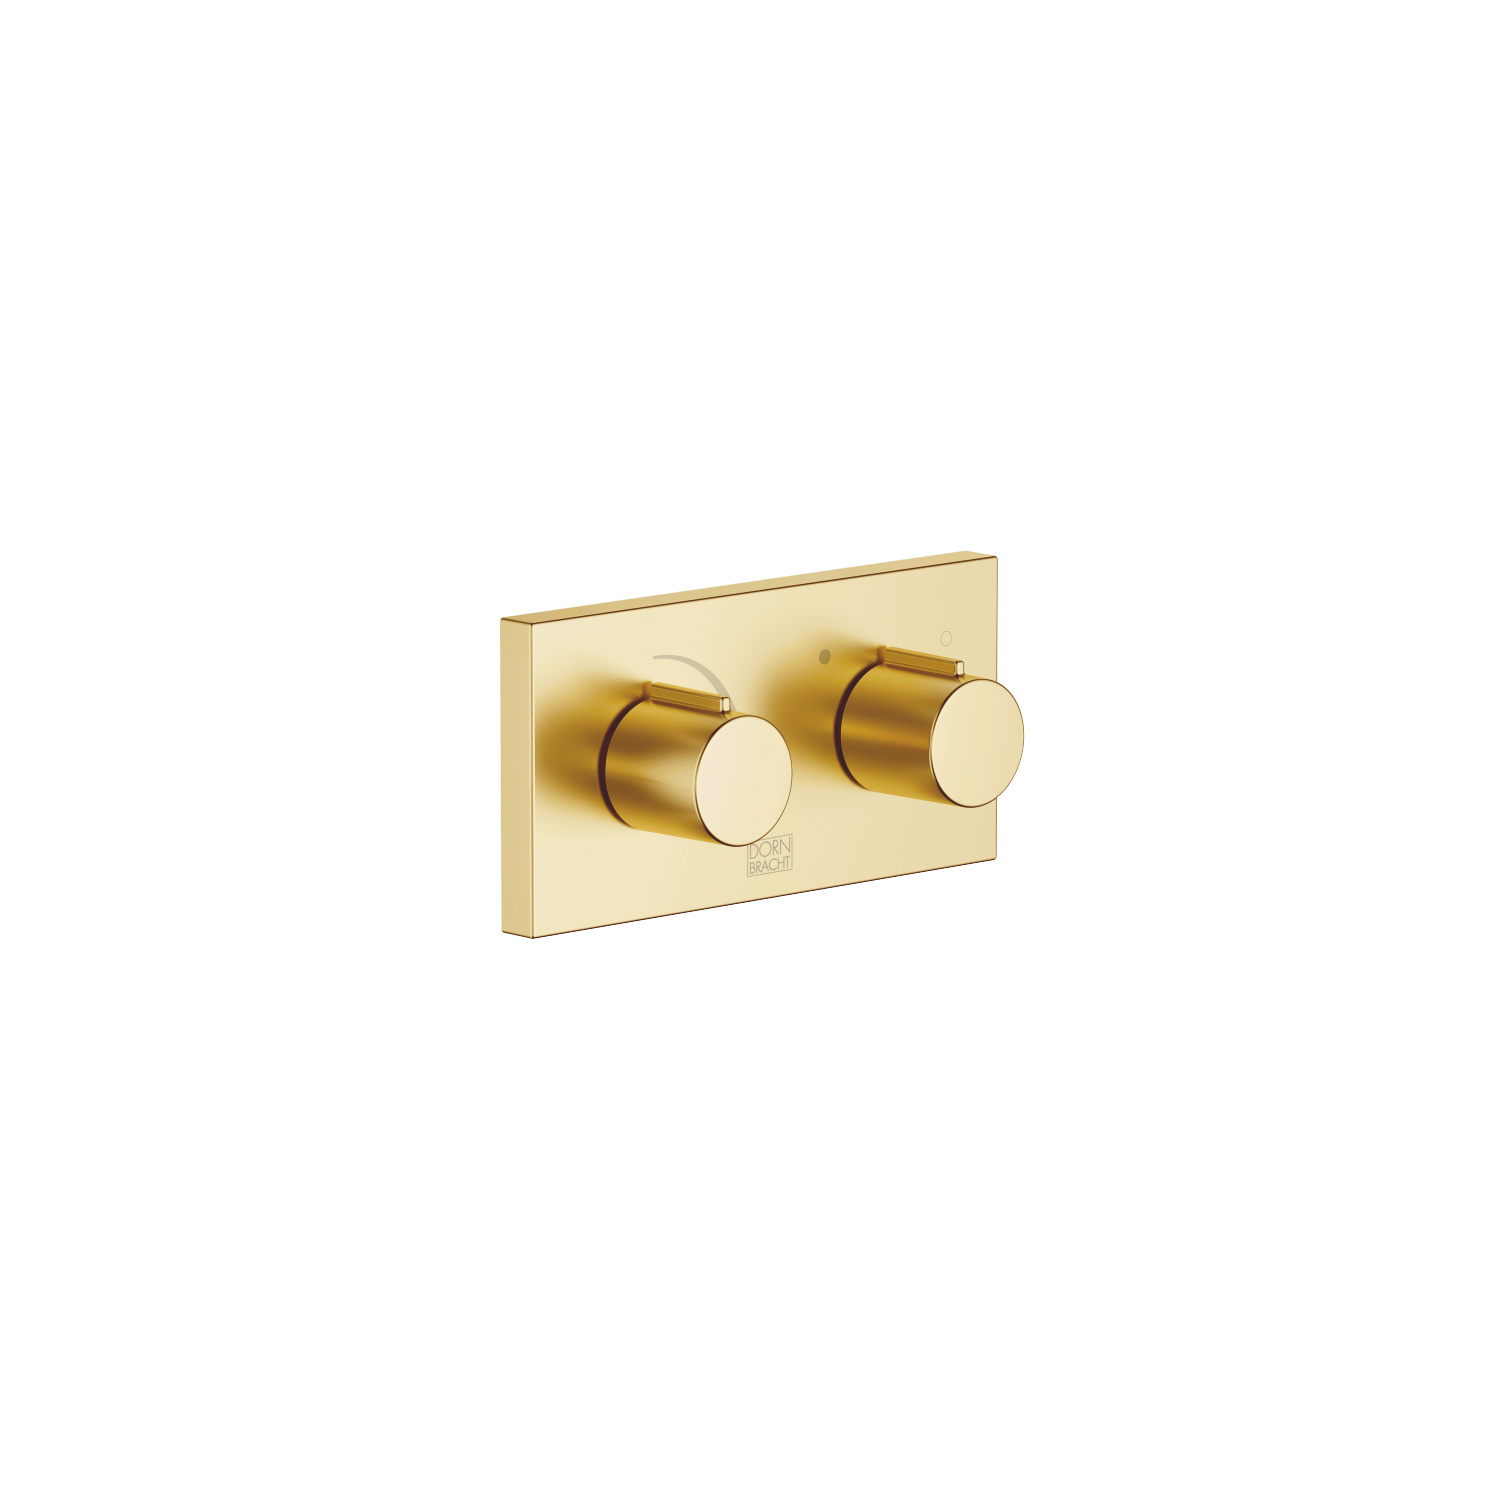 xGATE Mixer valve with volume control for wall mounting - brushed Durabrass